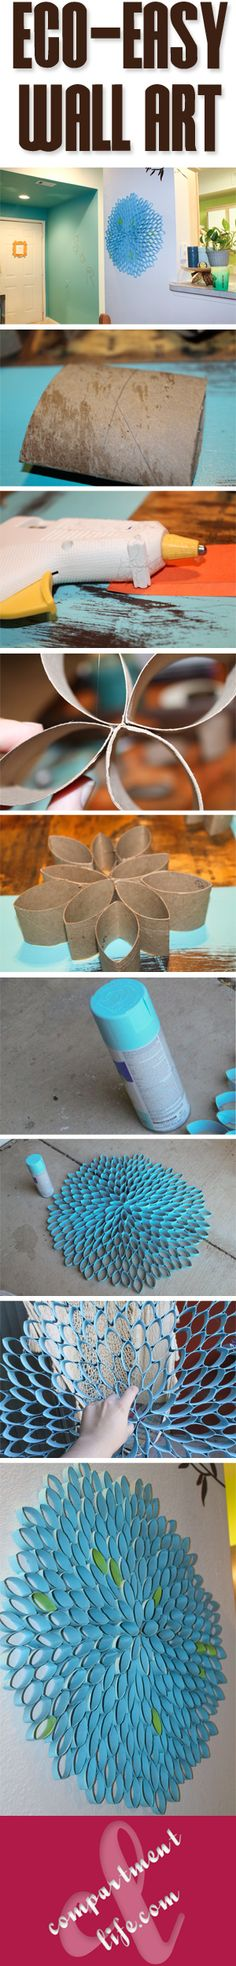 Toilet paper tube ART. So cool!